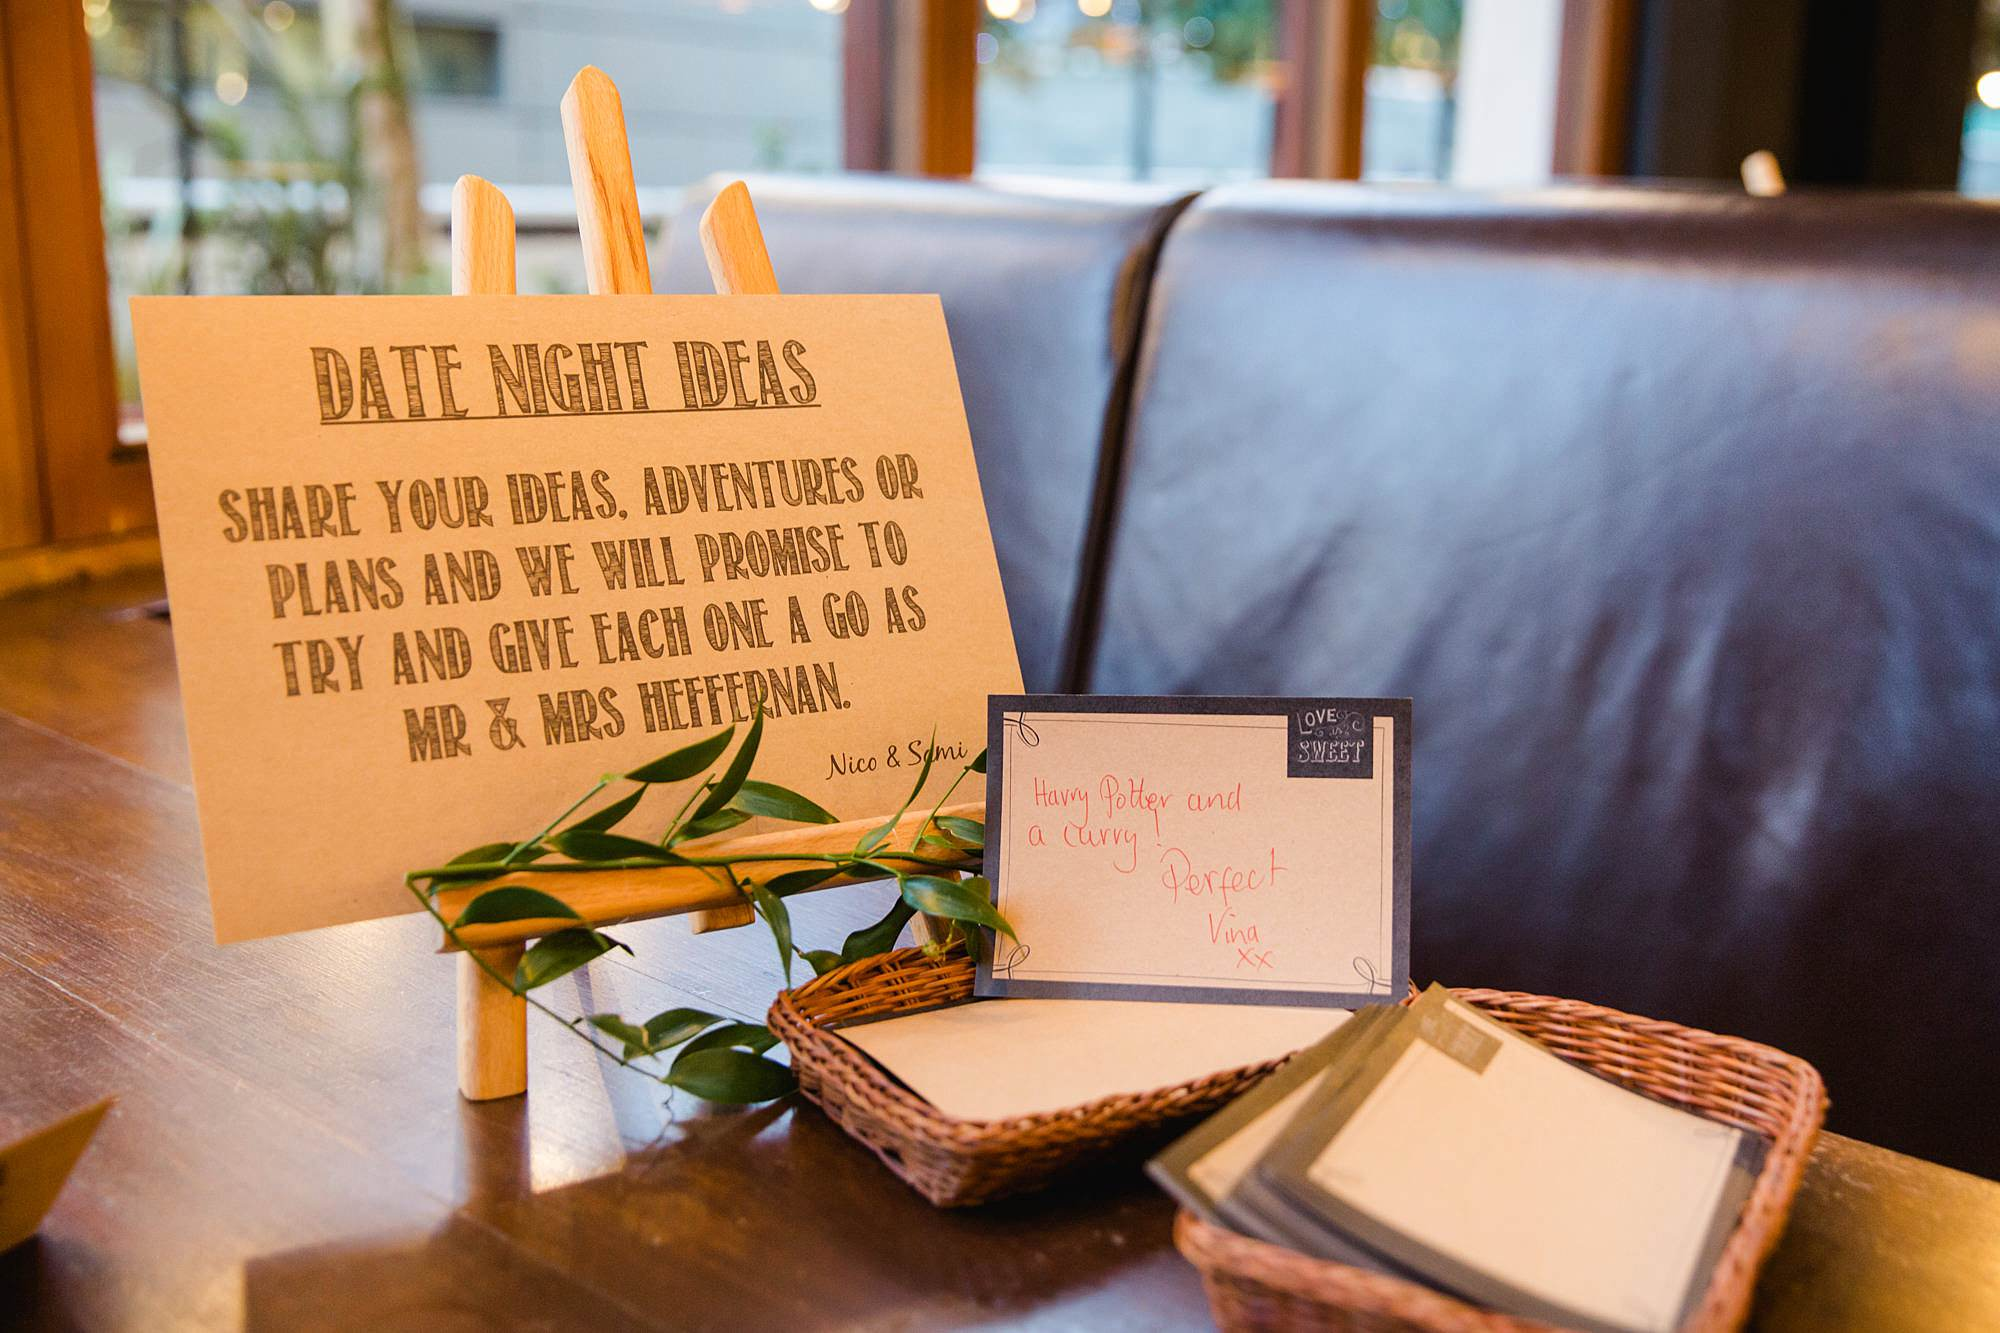 The Union Paddington wedding date night ideas decor